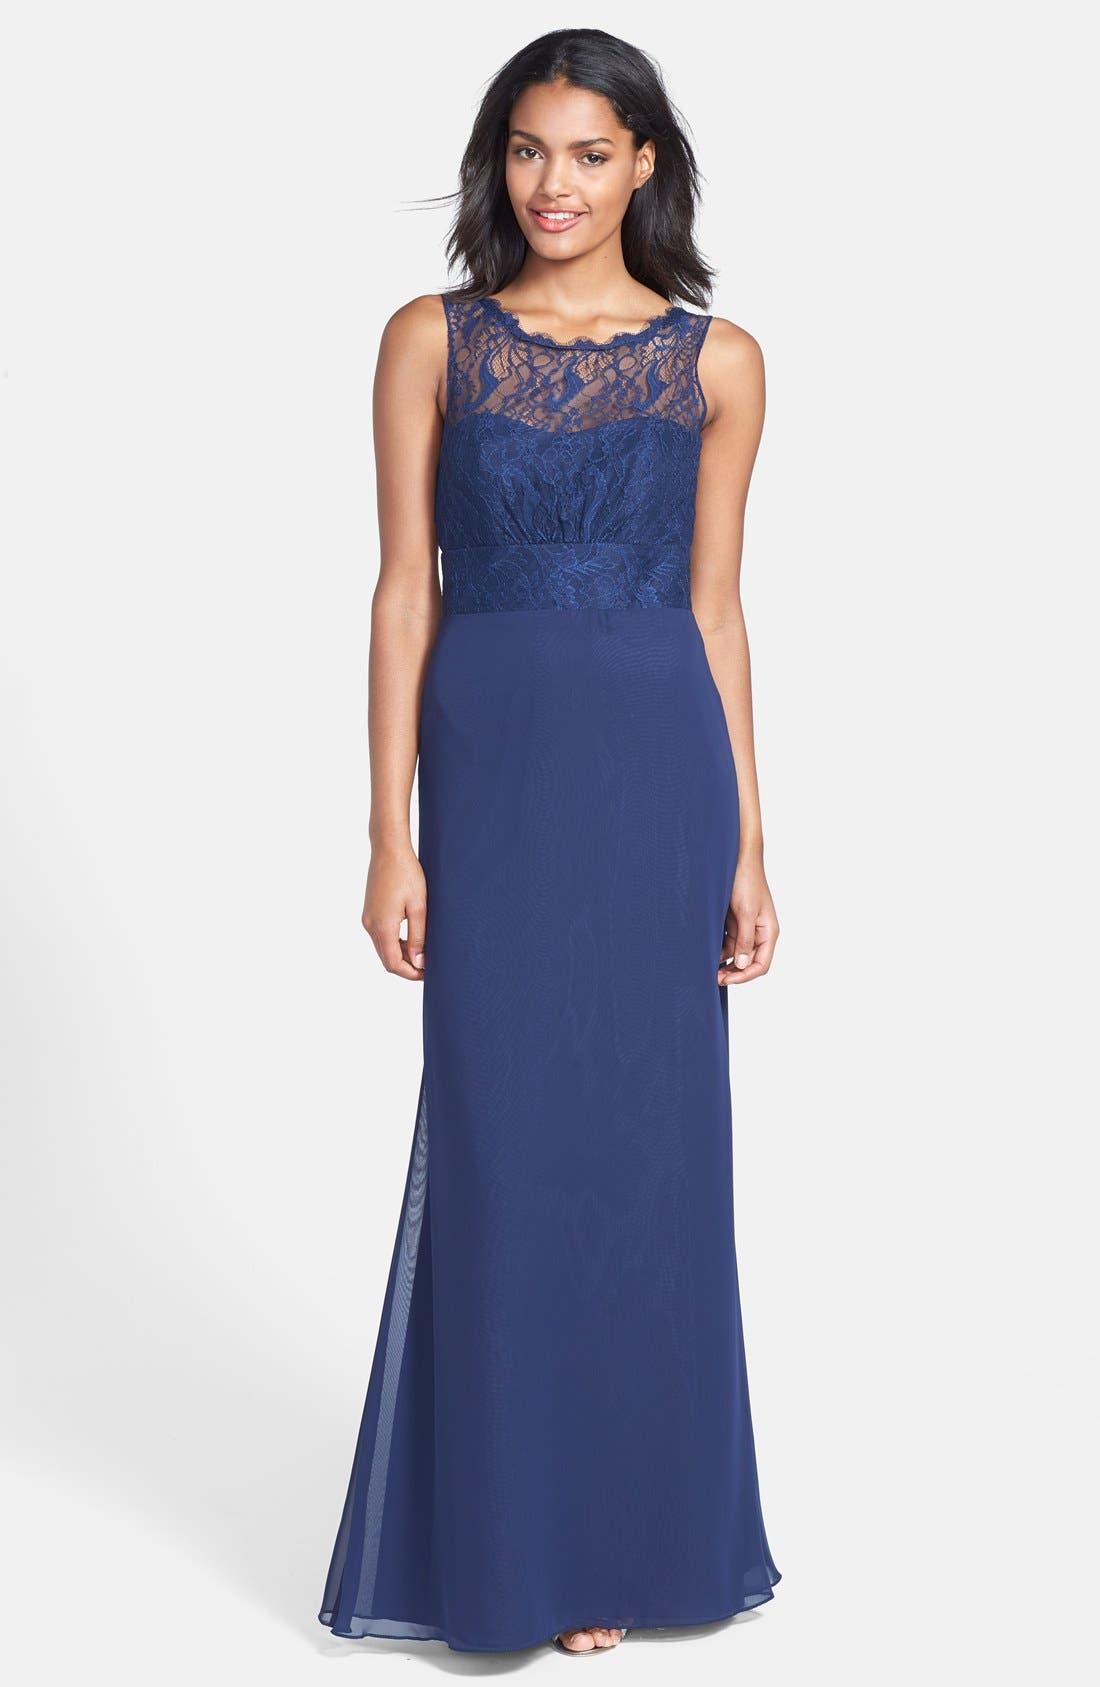 Main Image - Jim Hjelm Occasions Illusion Lace Bodice Chiffon Dress